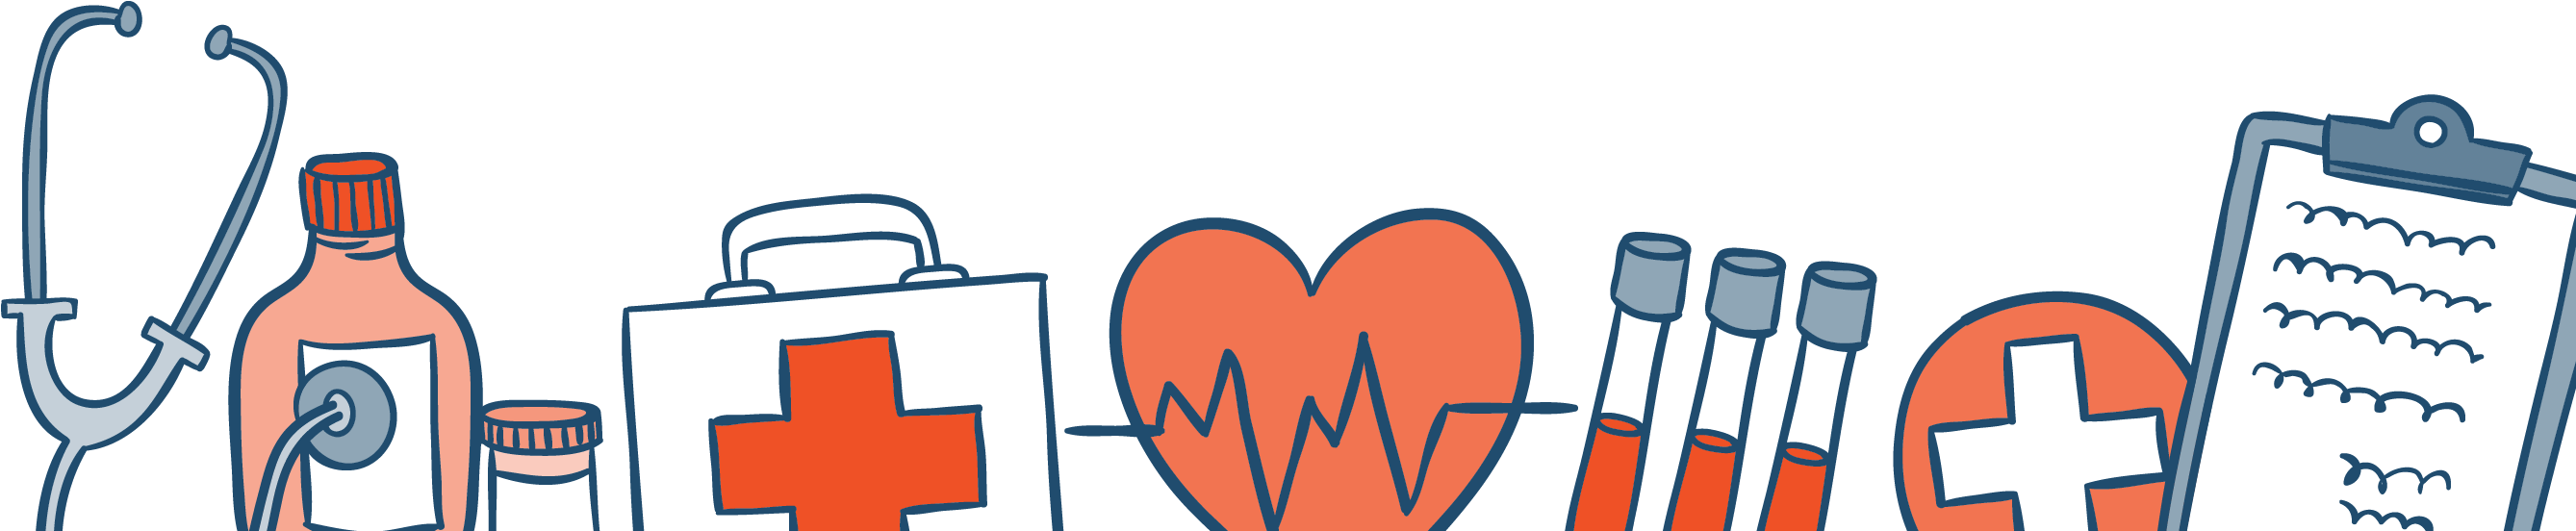 Download problem . Medical clipart health issue